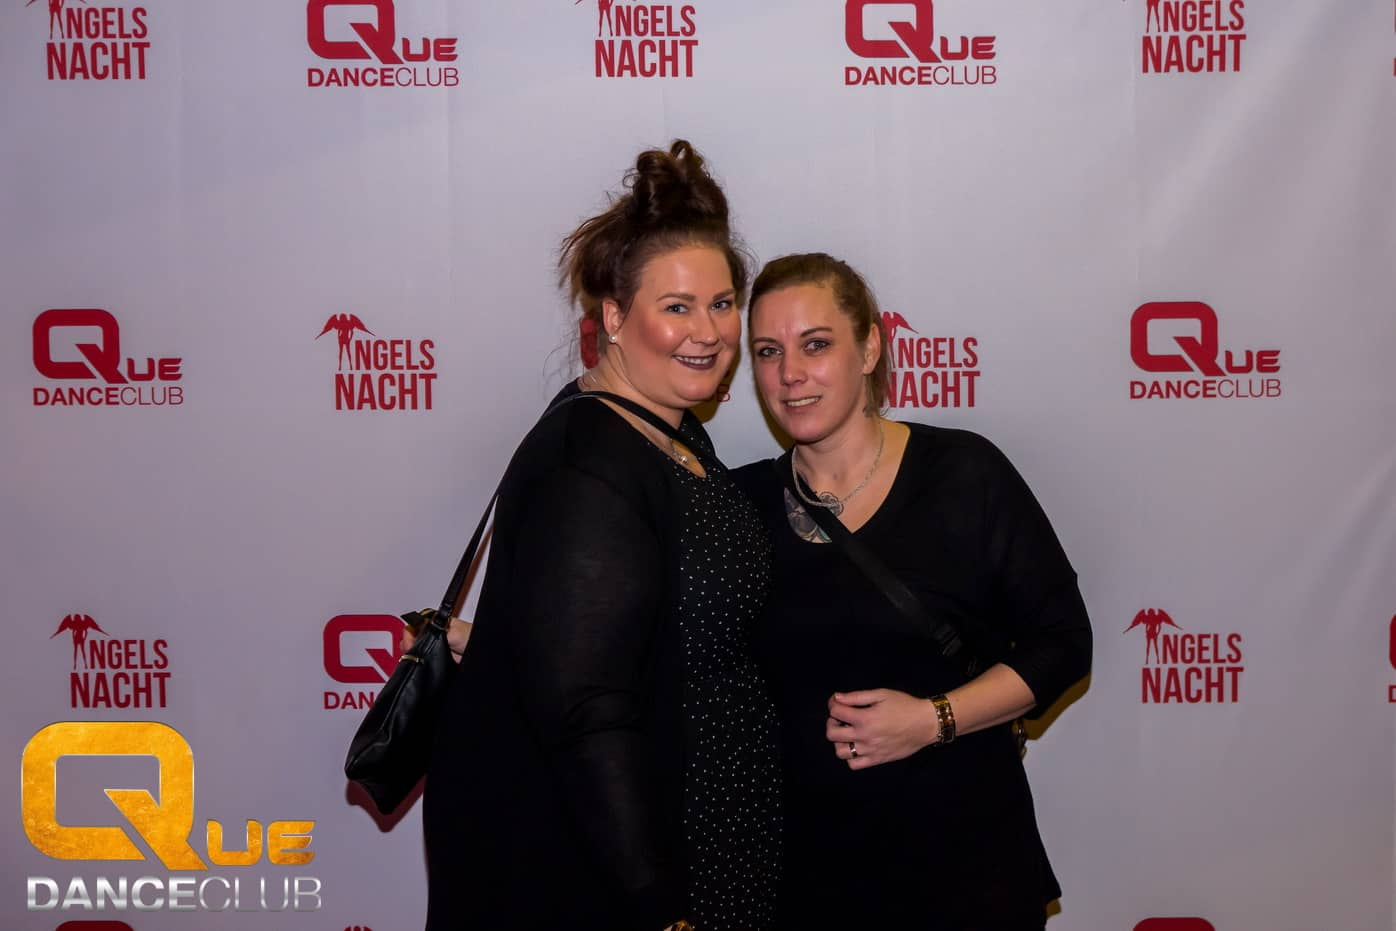 2018_12_25_Que_Danceclub_Engels_Nacht_2018_Nightlife_Scene_Timo_006